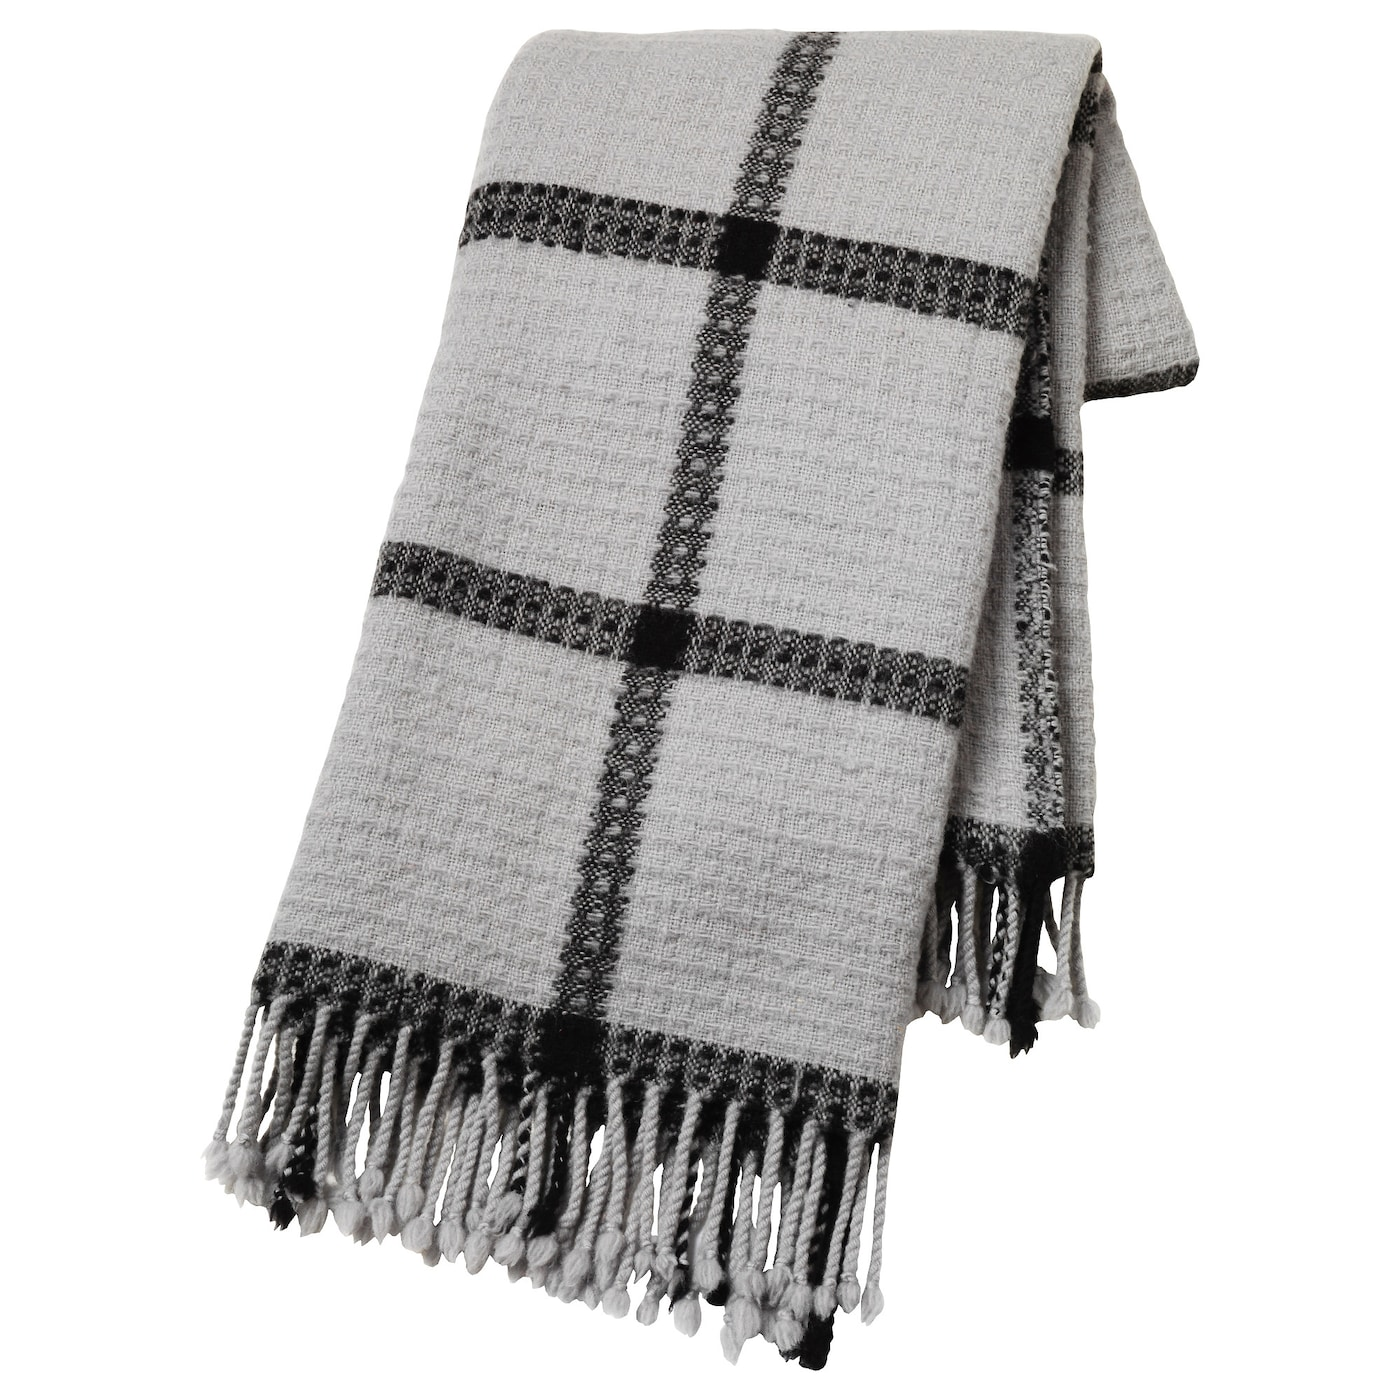 IKEA VÄSSAD throw A light-weight, decorative wool blanket that keeps you warm.